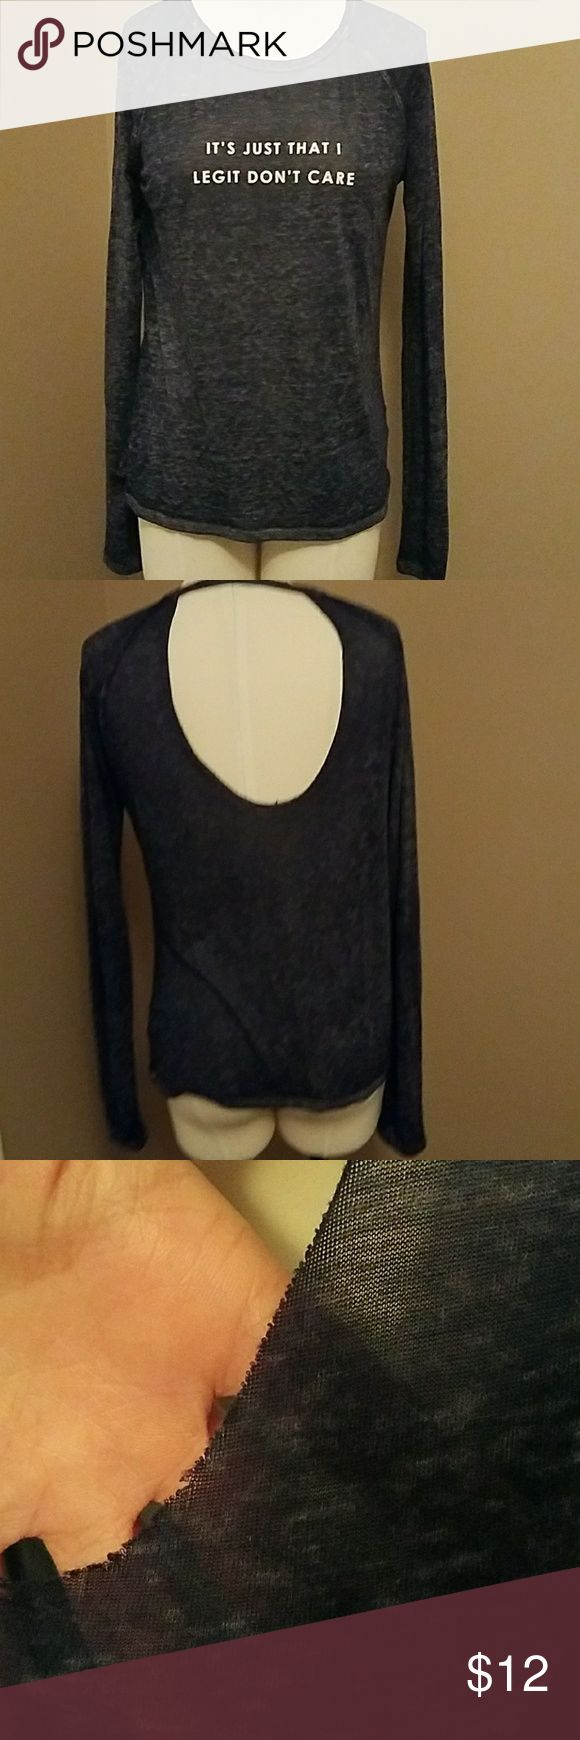 Burnout Tee Tissue tee..very thin. Really cute on because of the back. Perfect for lounging. Dark blue. Size not listed. Fits like a medium. Belk Tops Tees - Long Sleeve